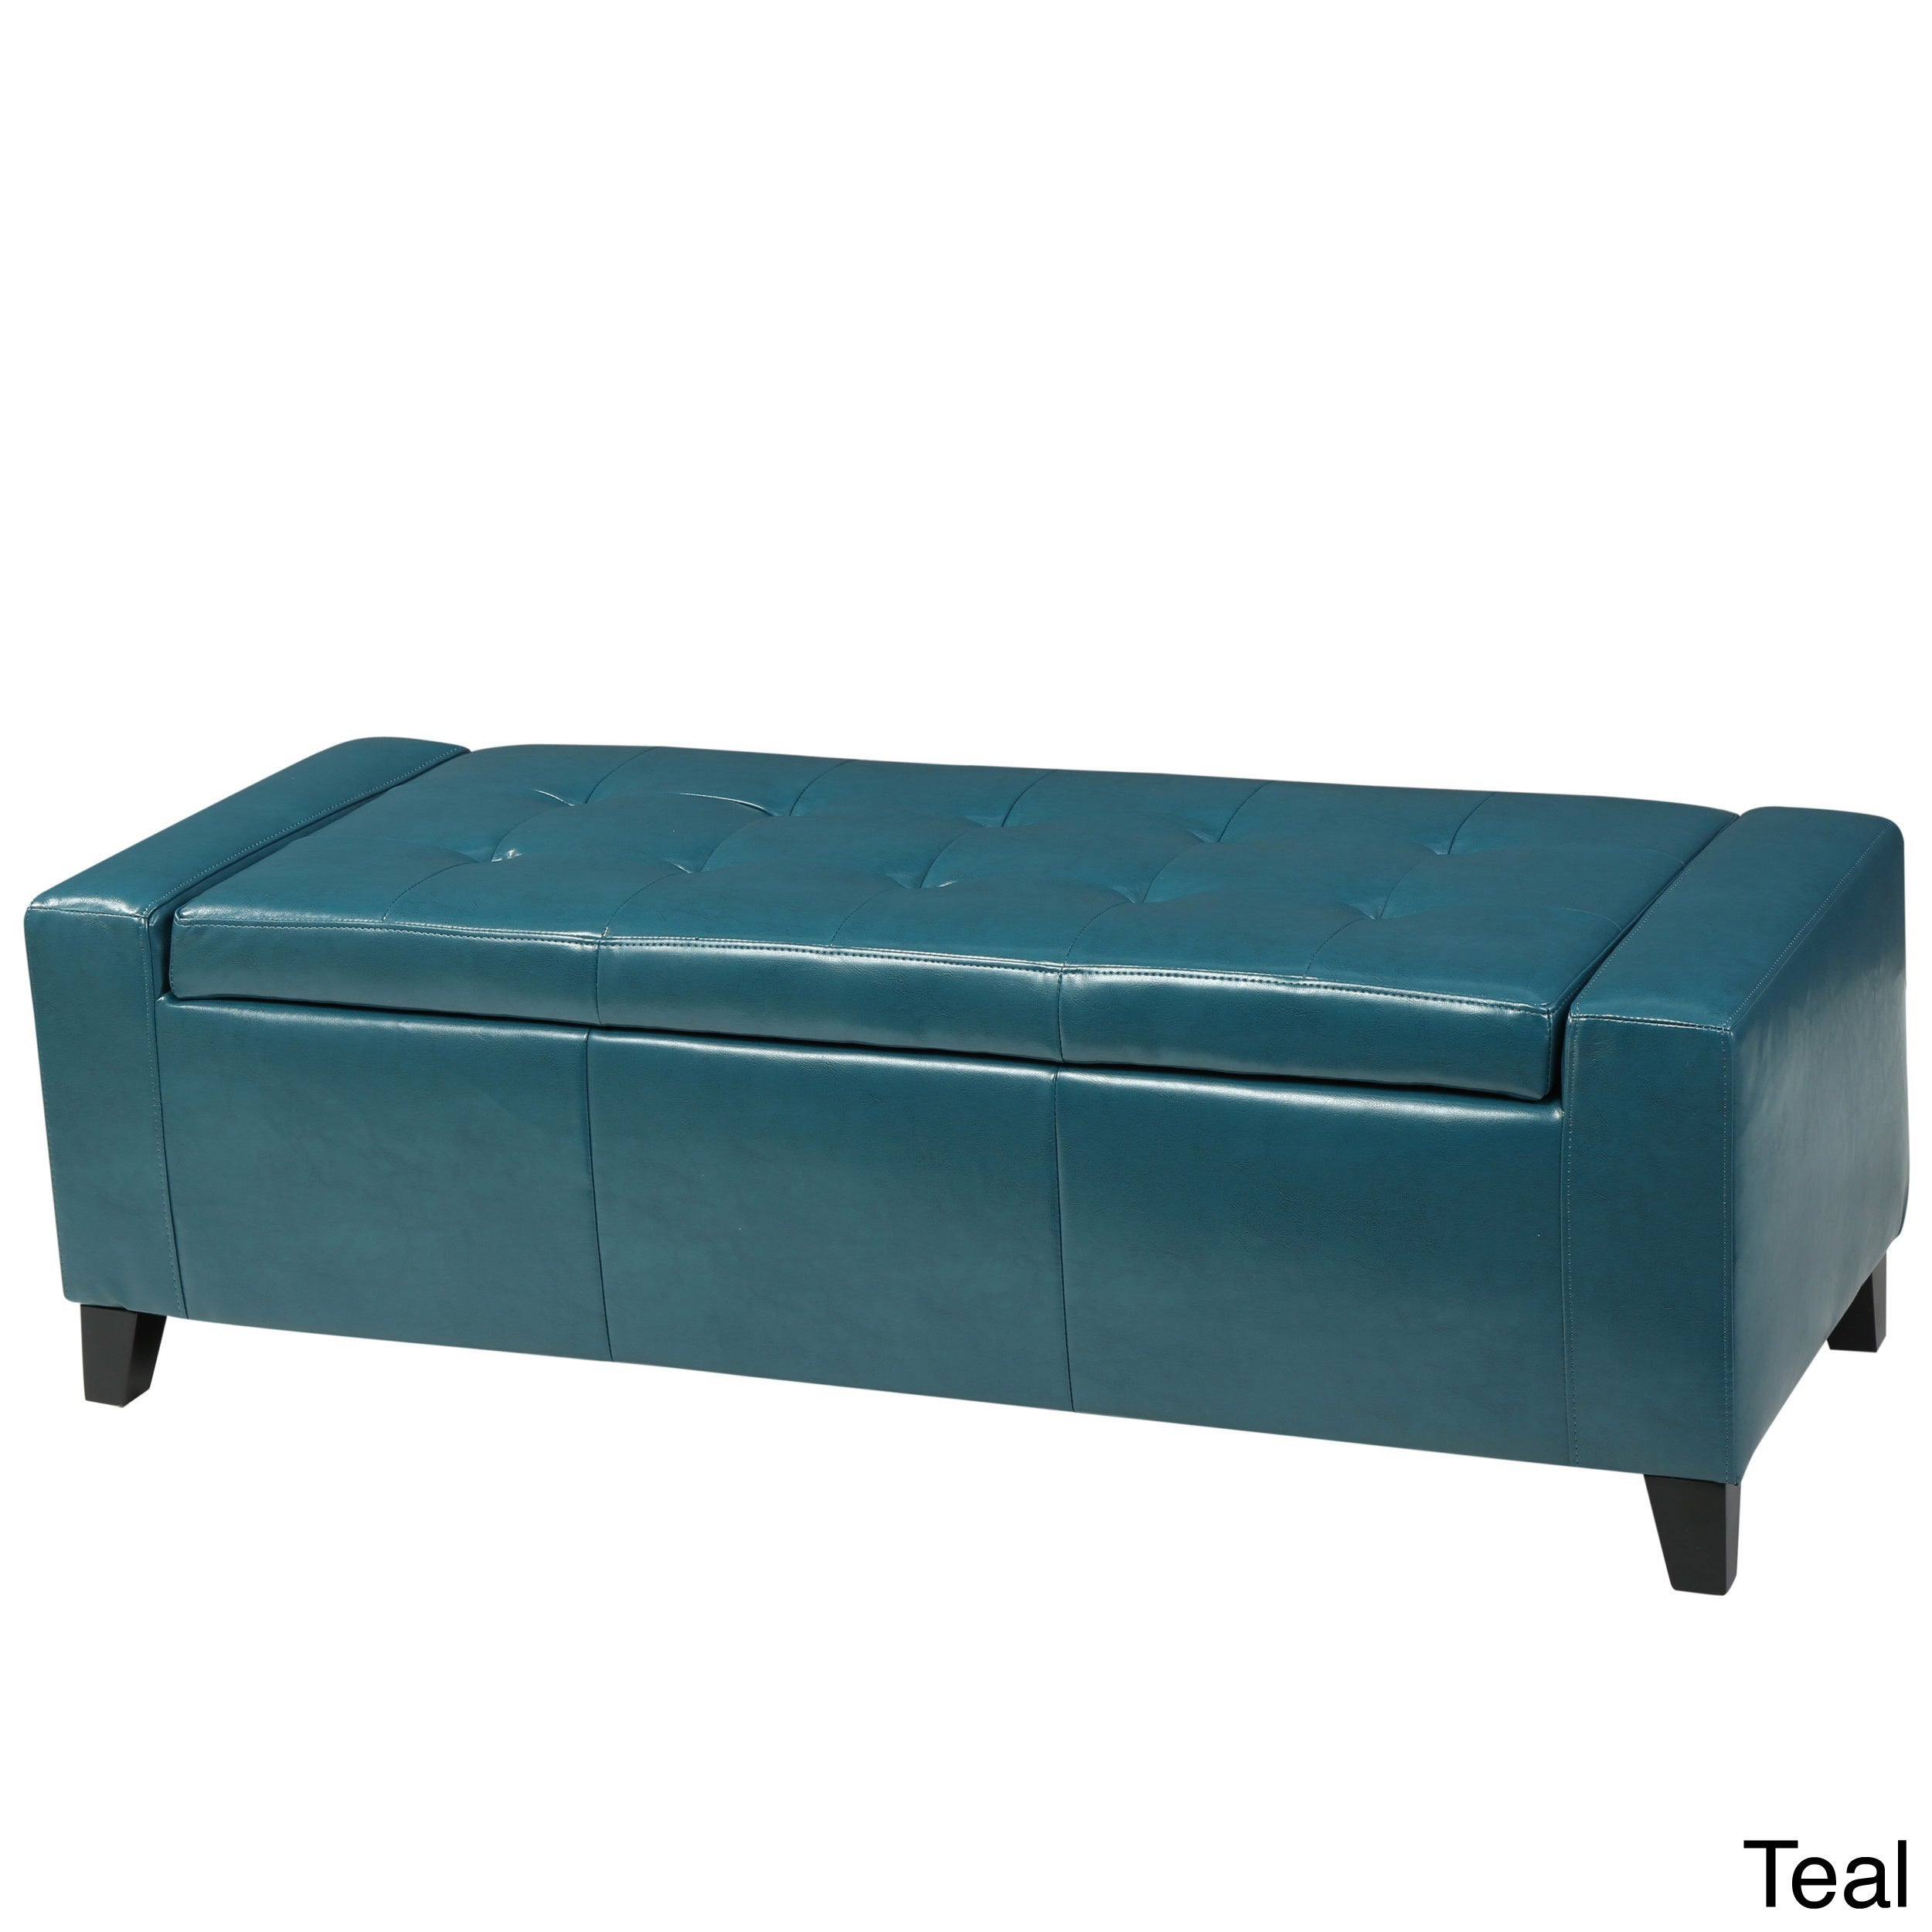 Delicieux Ottoman Storage Bench Padded Rectangle Seat Guest Chair Toy Organize Wood  Teal